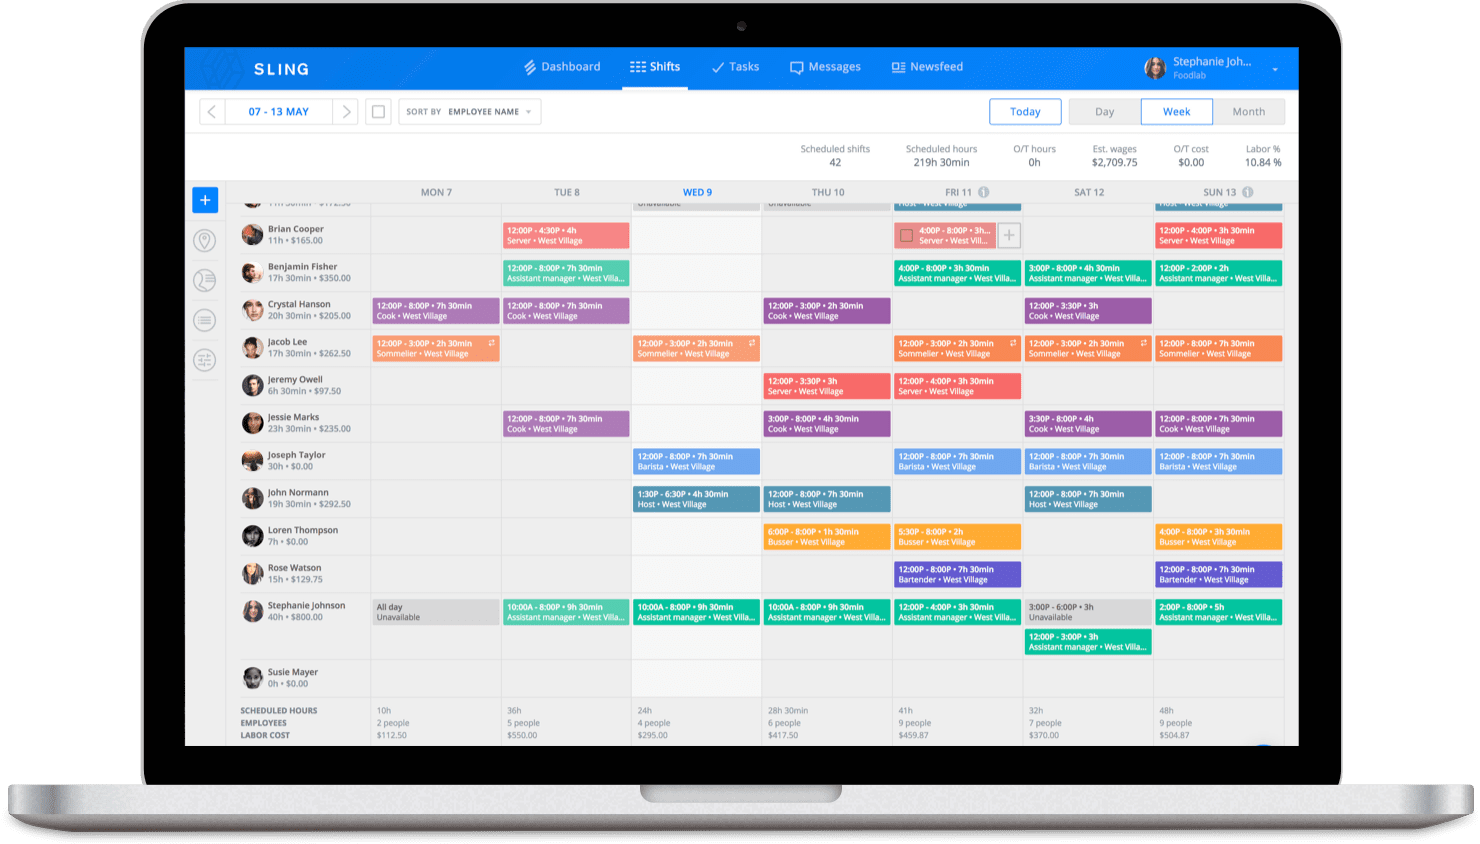 Sling feature for creating a seasonal schedule